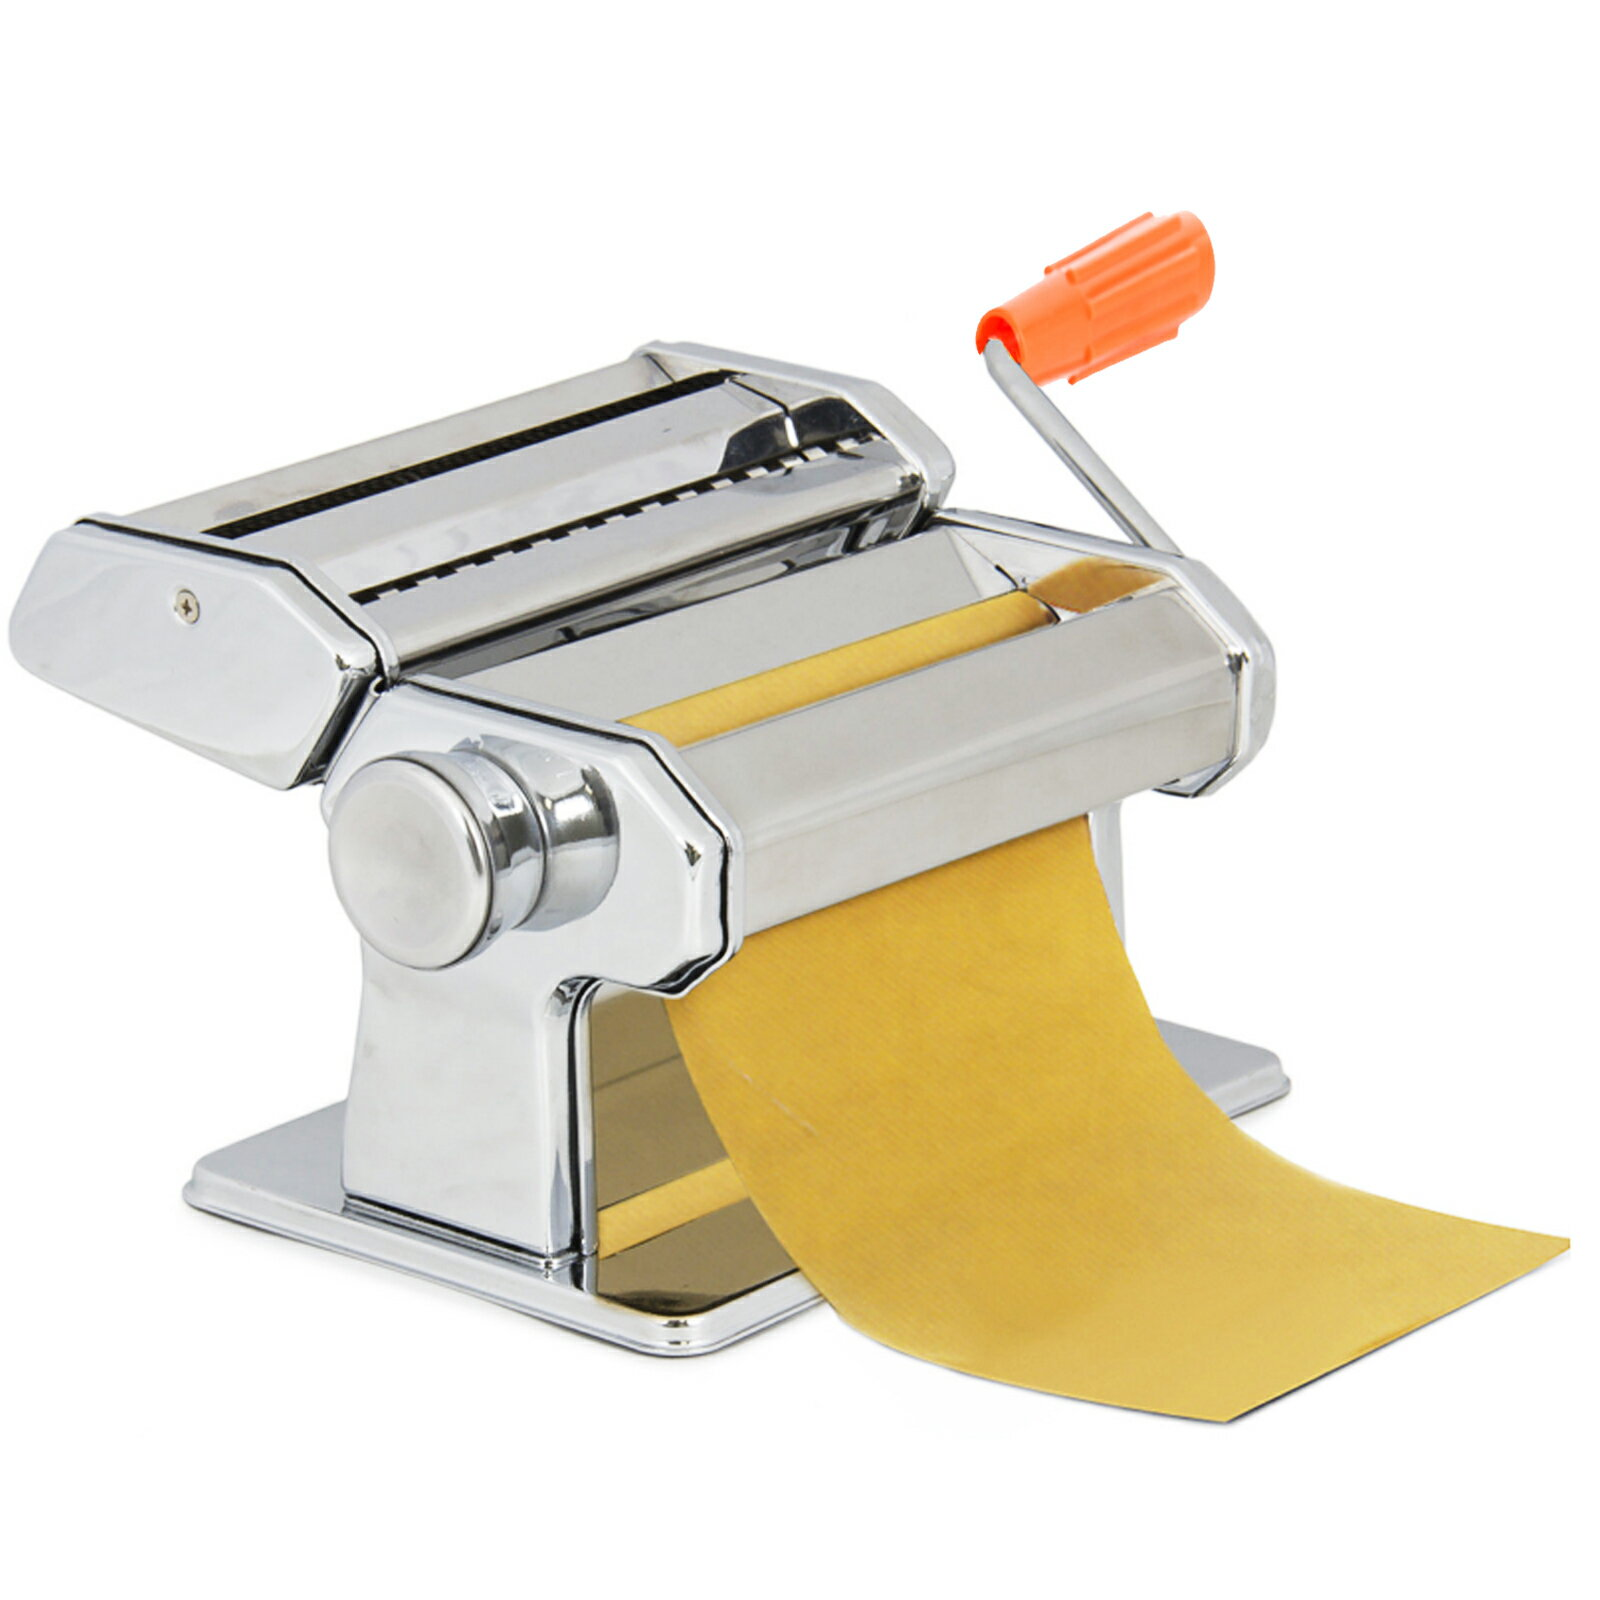 Removable Pasta Make Roller Machine Dough Fresh Noodle Making 0